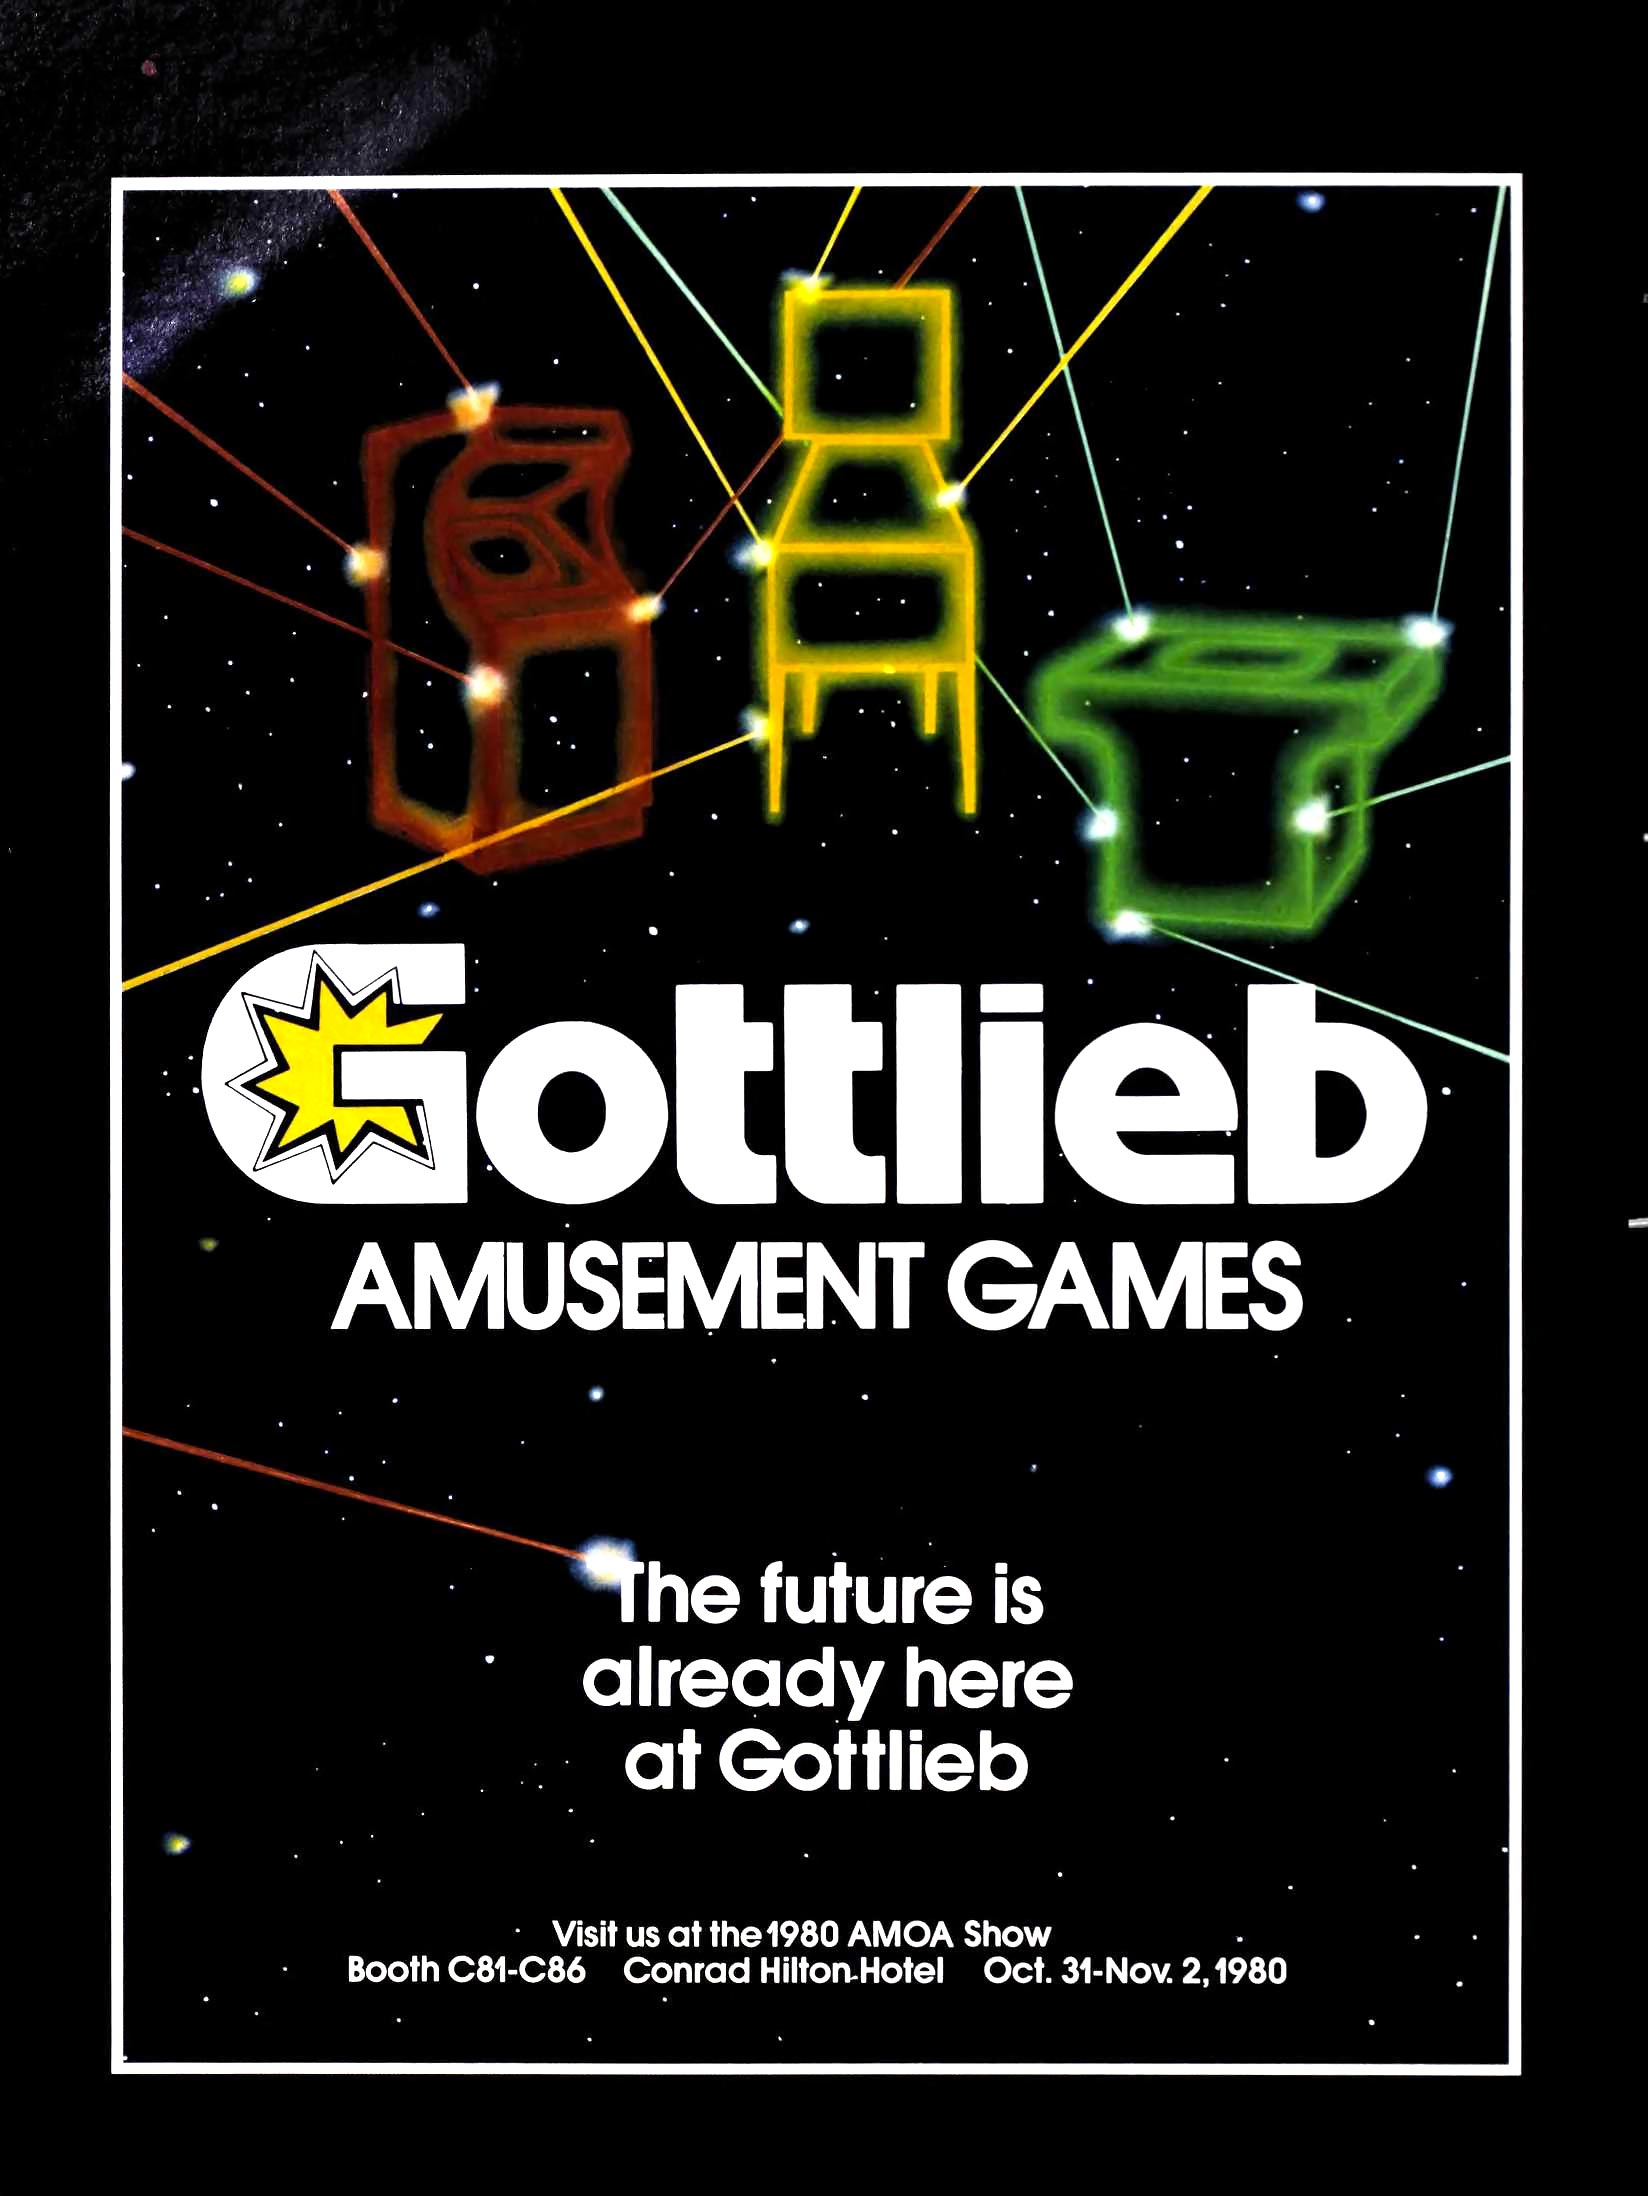 Ad for Gottlieb, maker of arcade video games